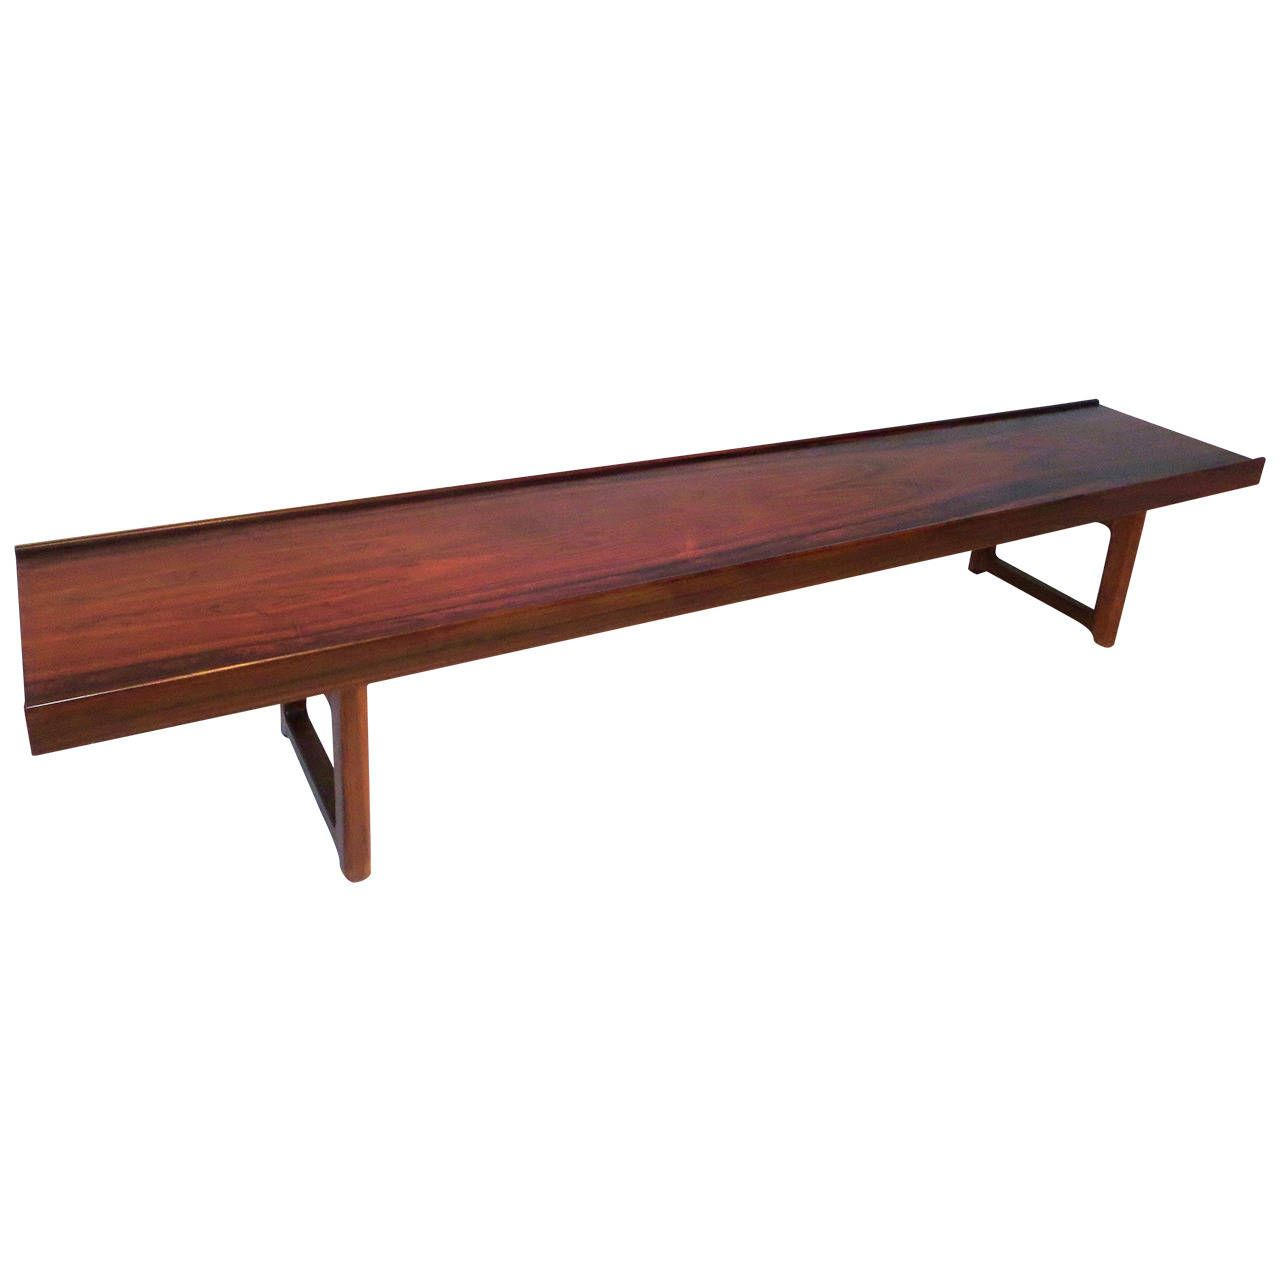 Long Table Benches Long Low Profile Bench Or Coffee Table In Rosewood